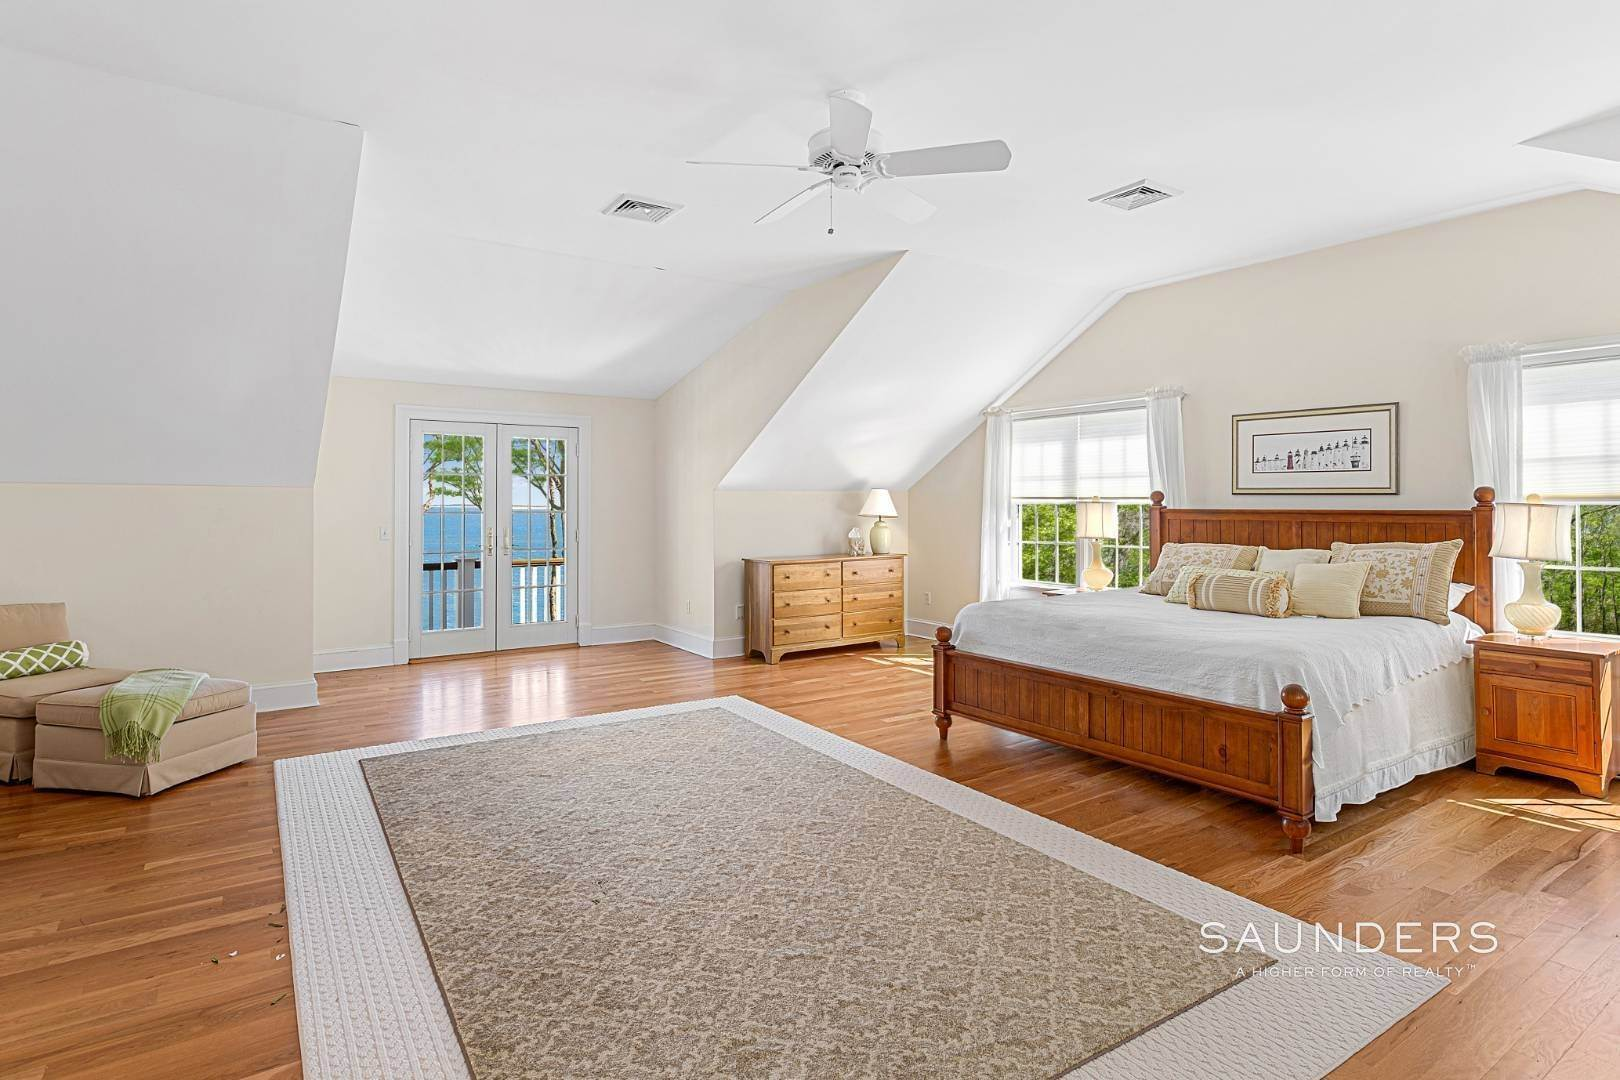 19. Single Family Homes for Sale at Shelter Island Gardiners Bay Beach House With Pool 72 Gardiners Bay Drive, Shelter Island Heights, Shelter Island, NY 11964